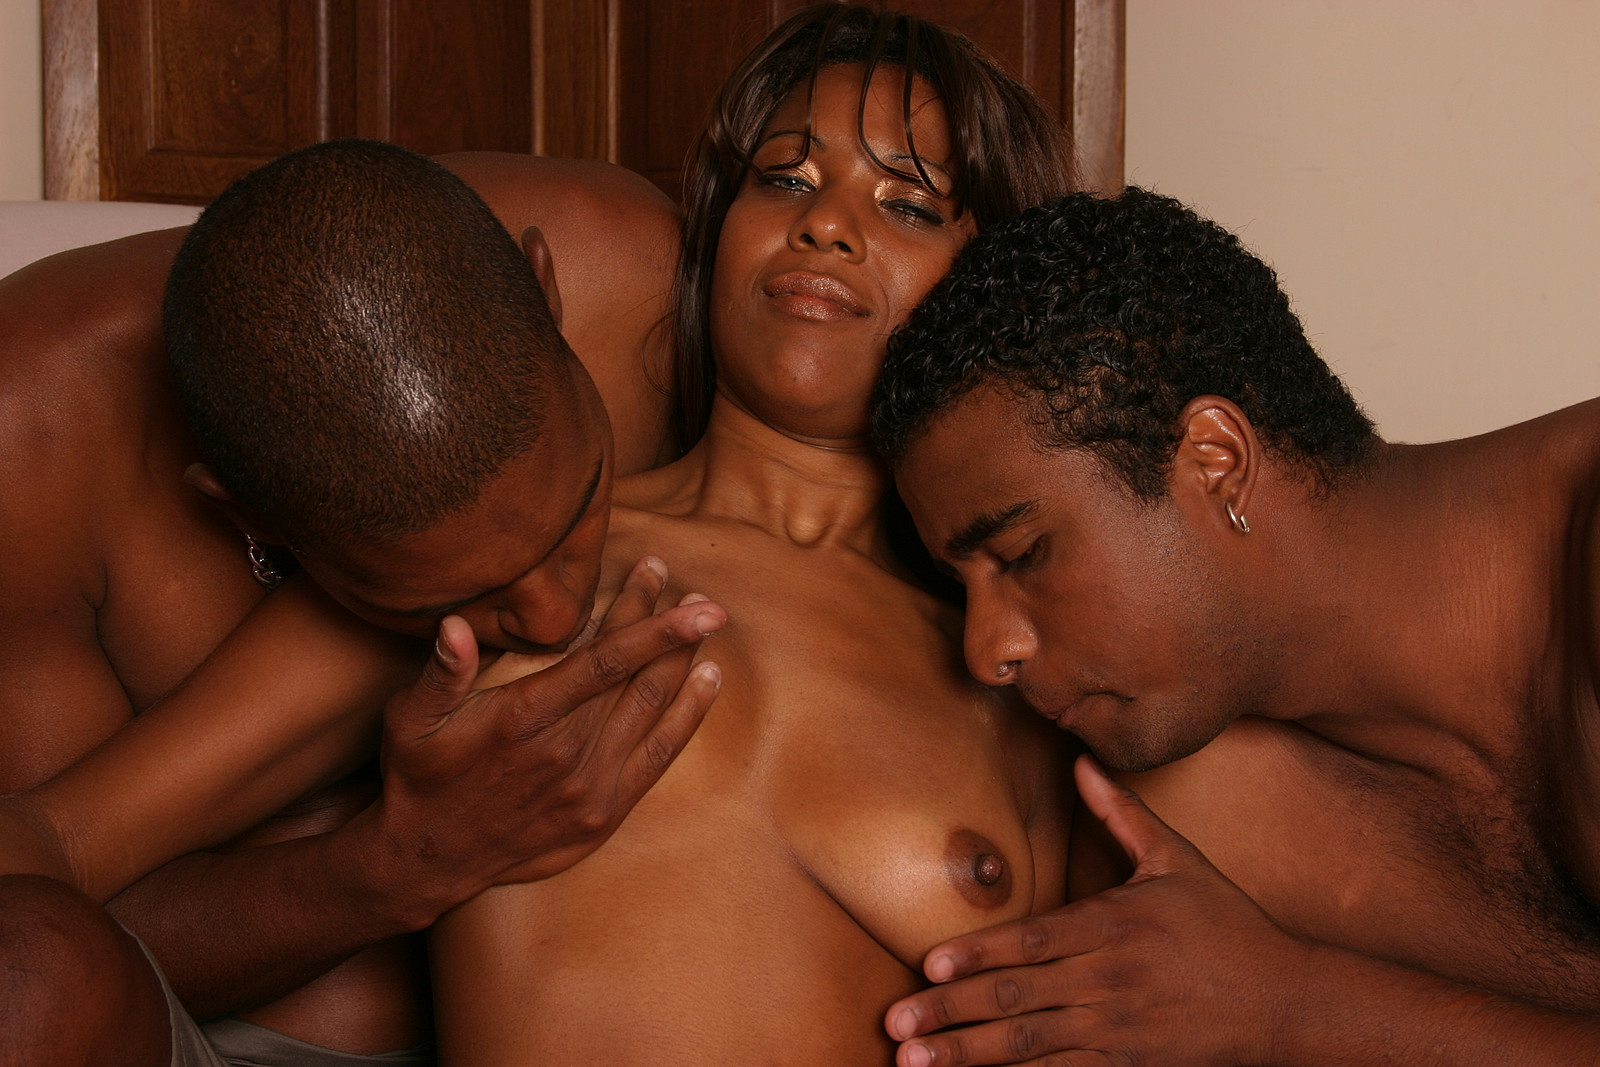 black and bisexual |black bi sexuals have a threesome| free preview!